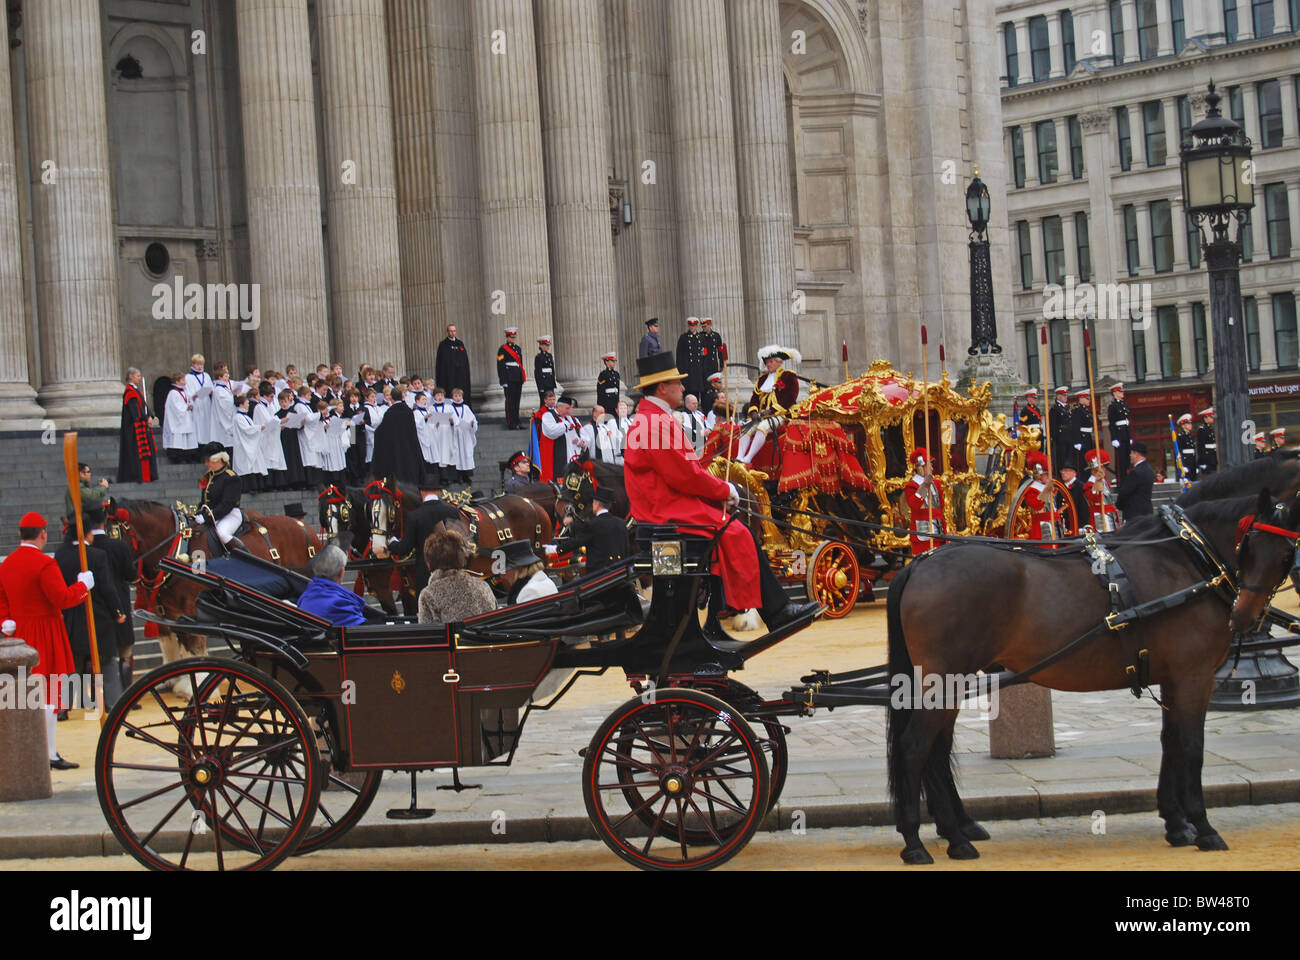 The Lord Mayors Show City of London 2010 - Stock Image